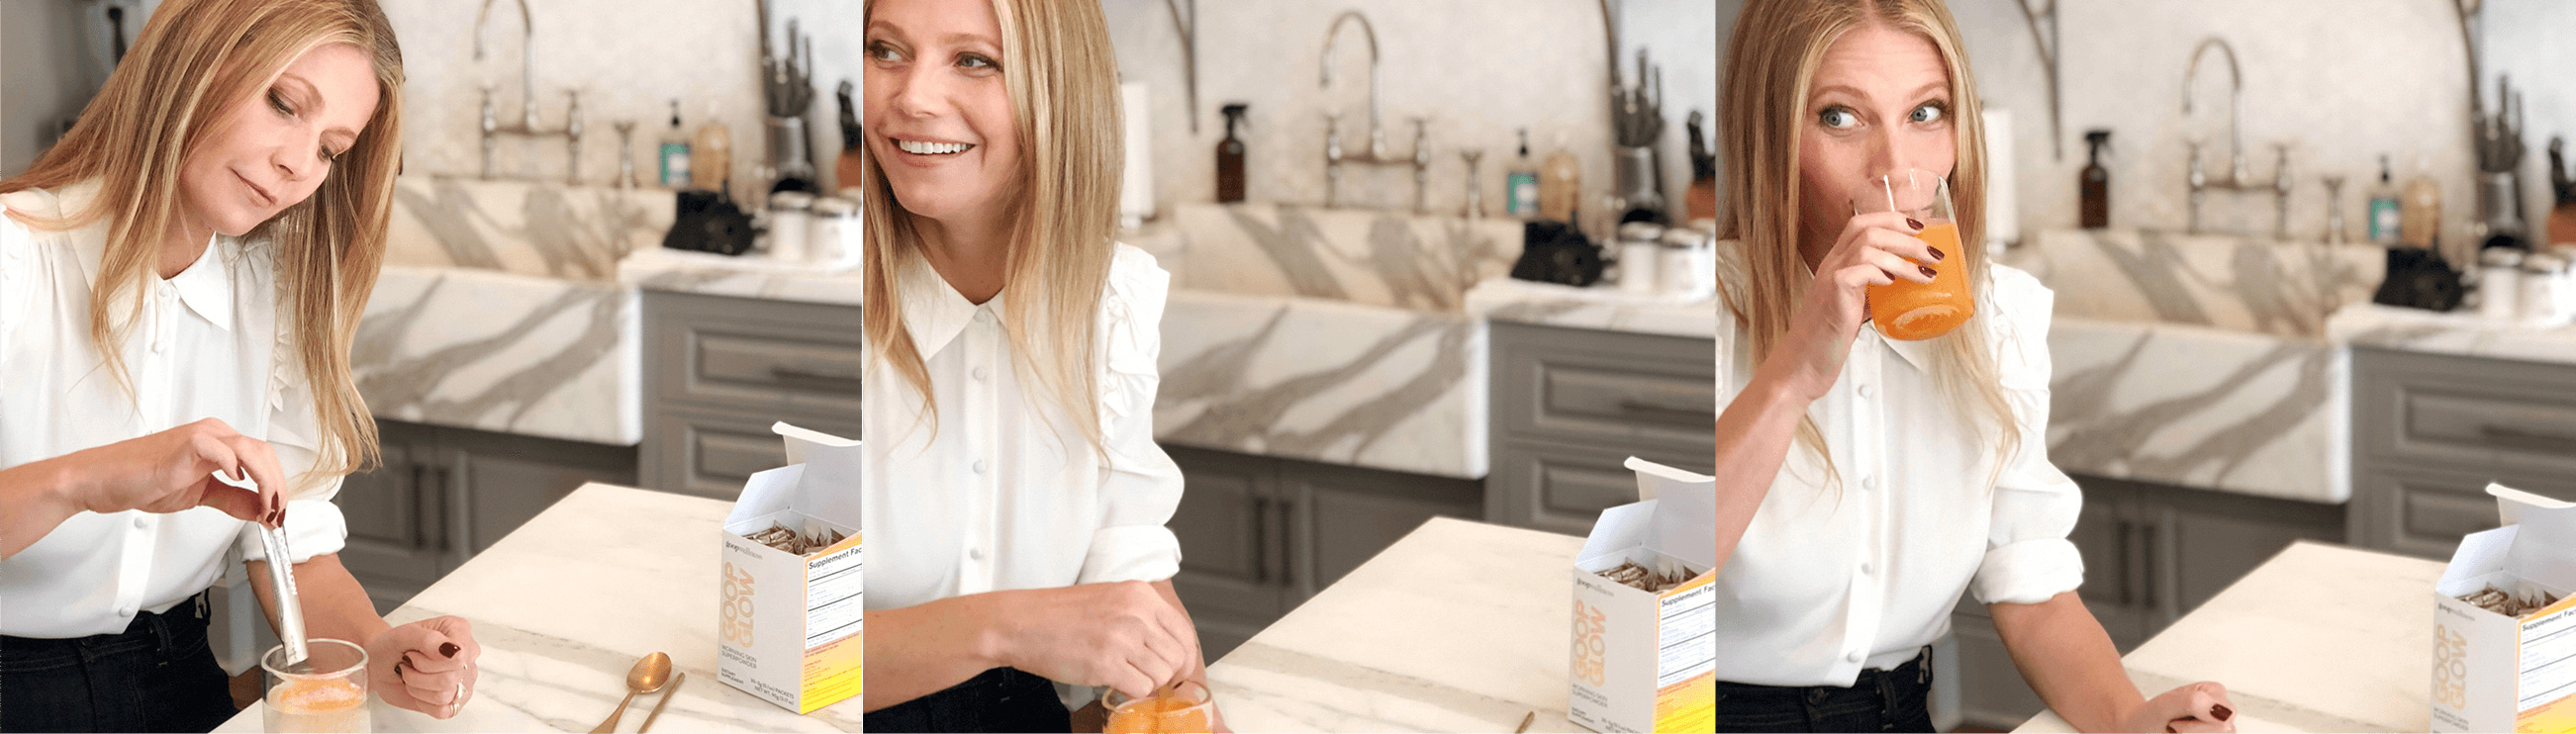 Gwyneth Paltrow Drinking goop Wellness goopglow